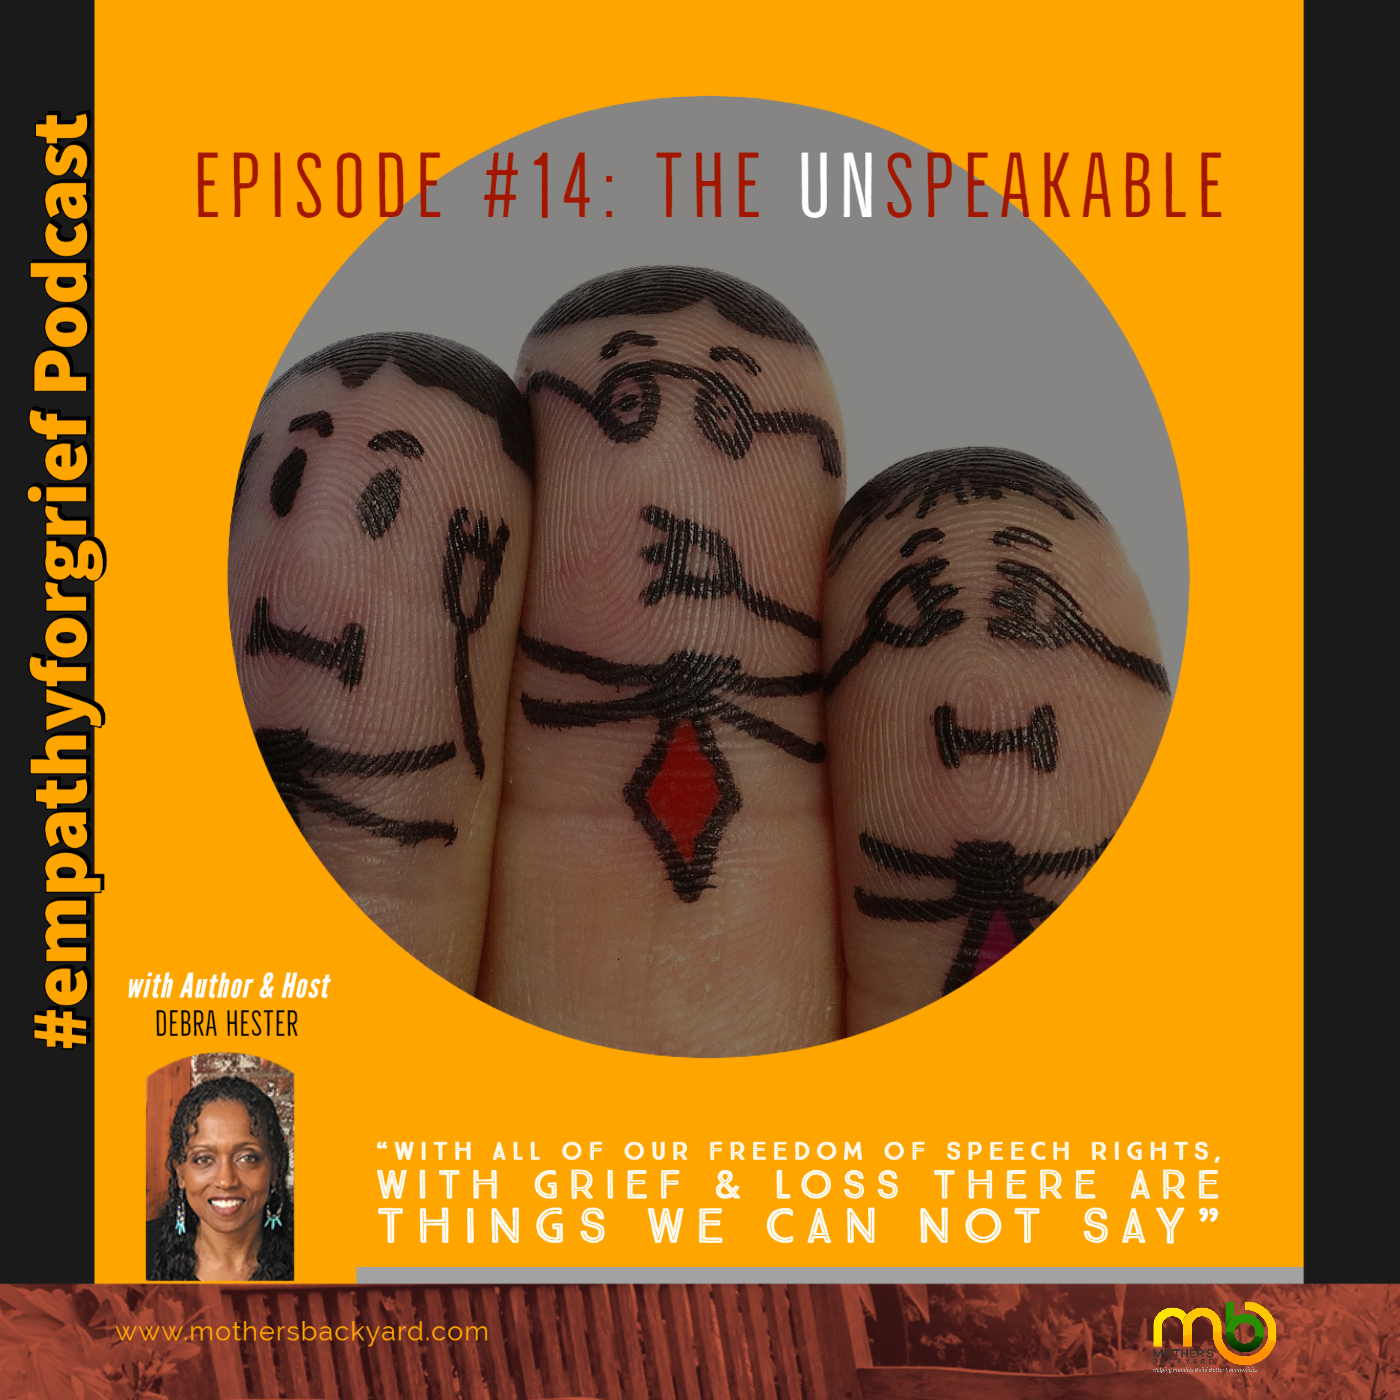 #empathyforgrief and loss cover - Episode 14 - The Unspeakables - Mother's Backyard